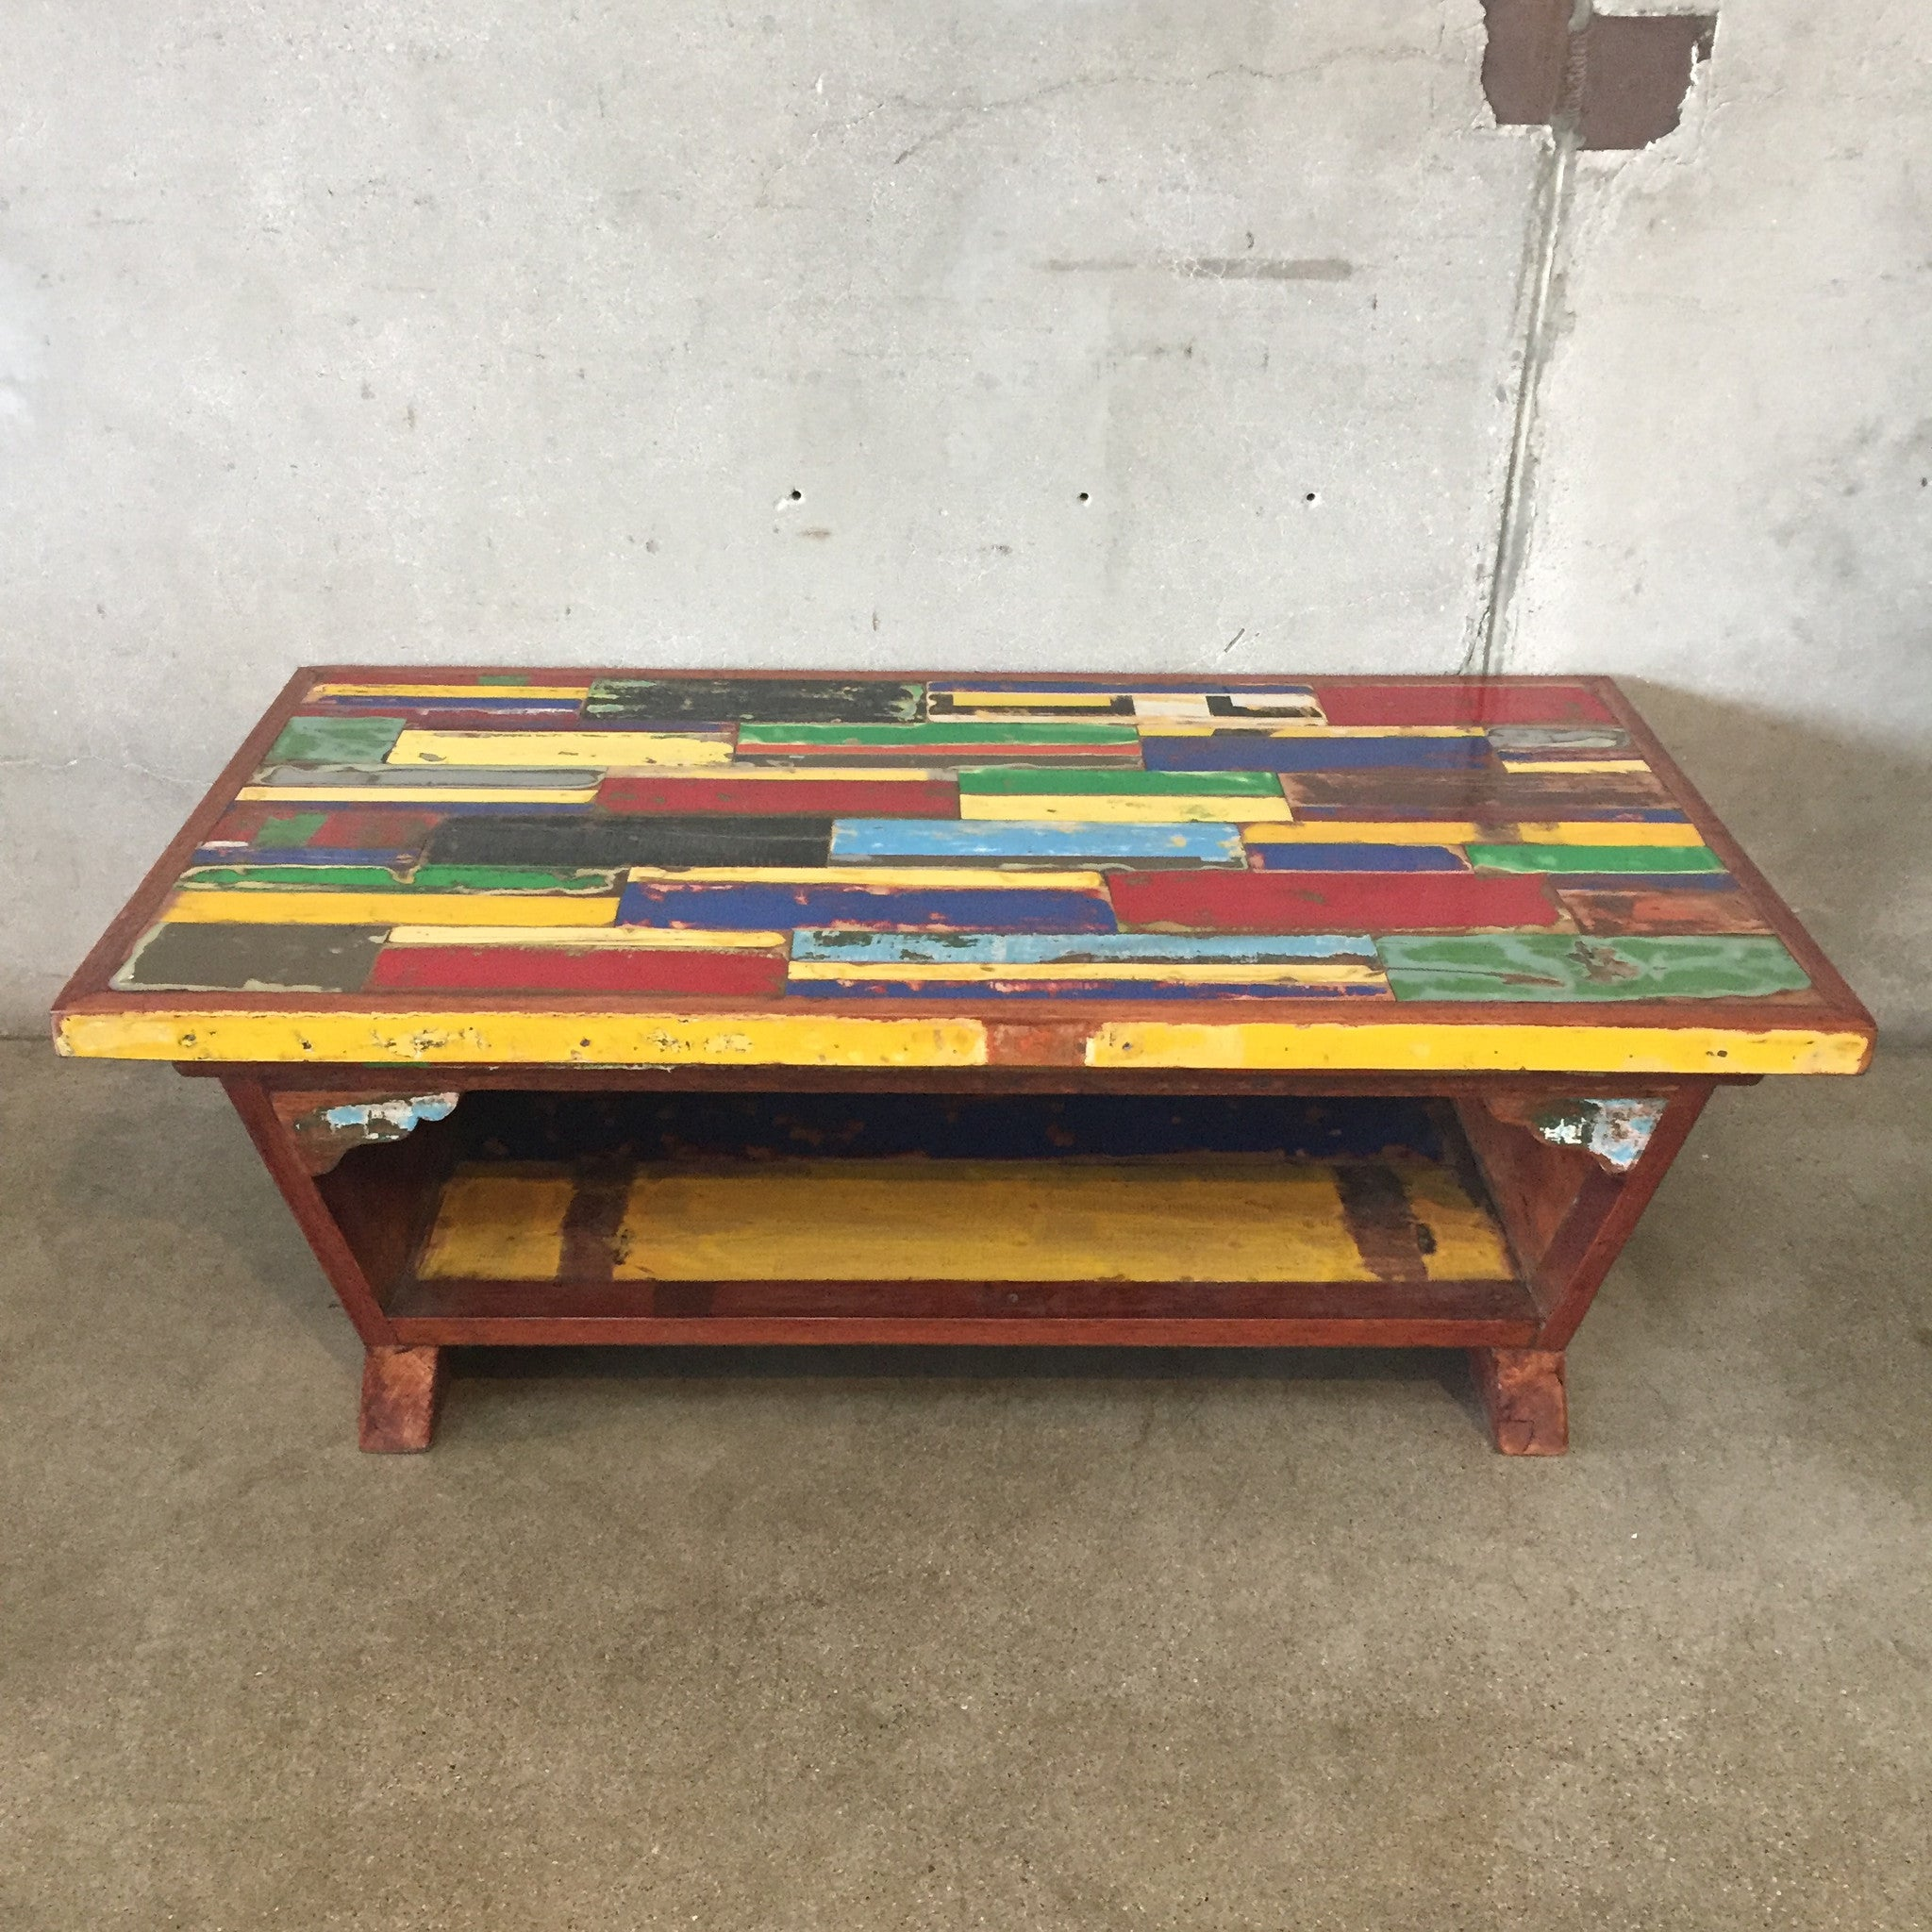 Reclaimed Boat Wood Coffee Table – UrbanAmericana